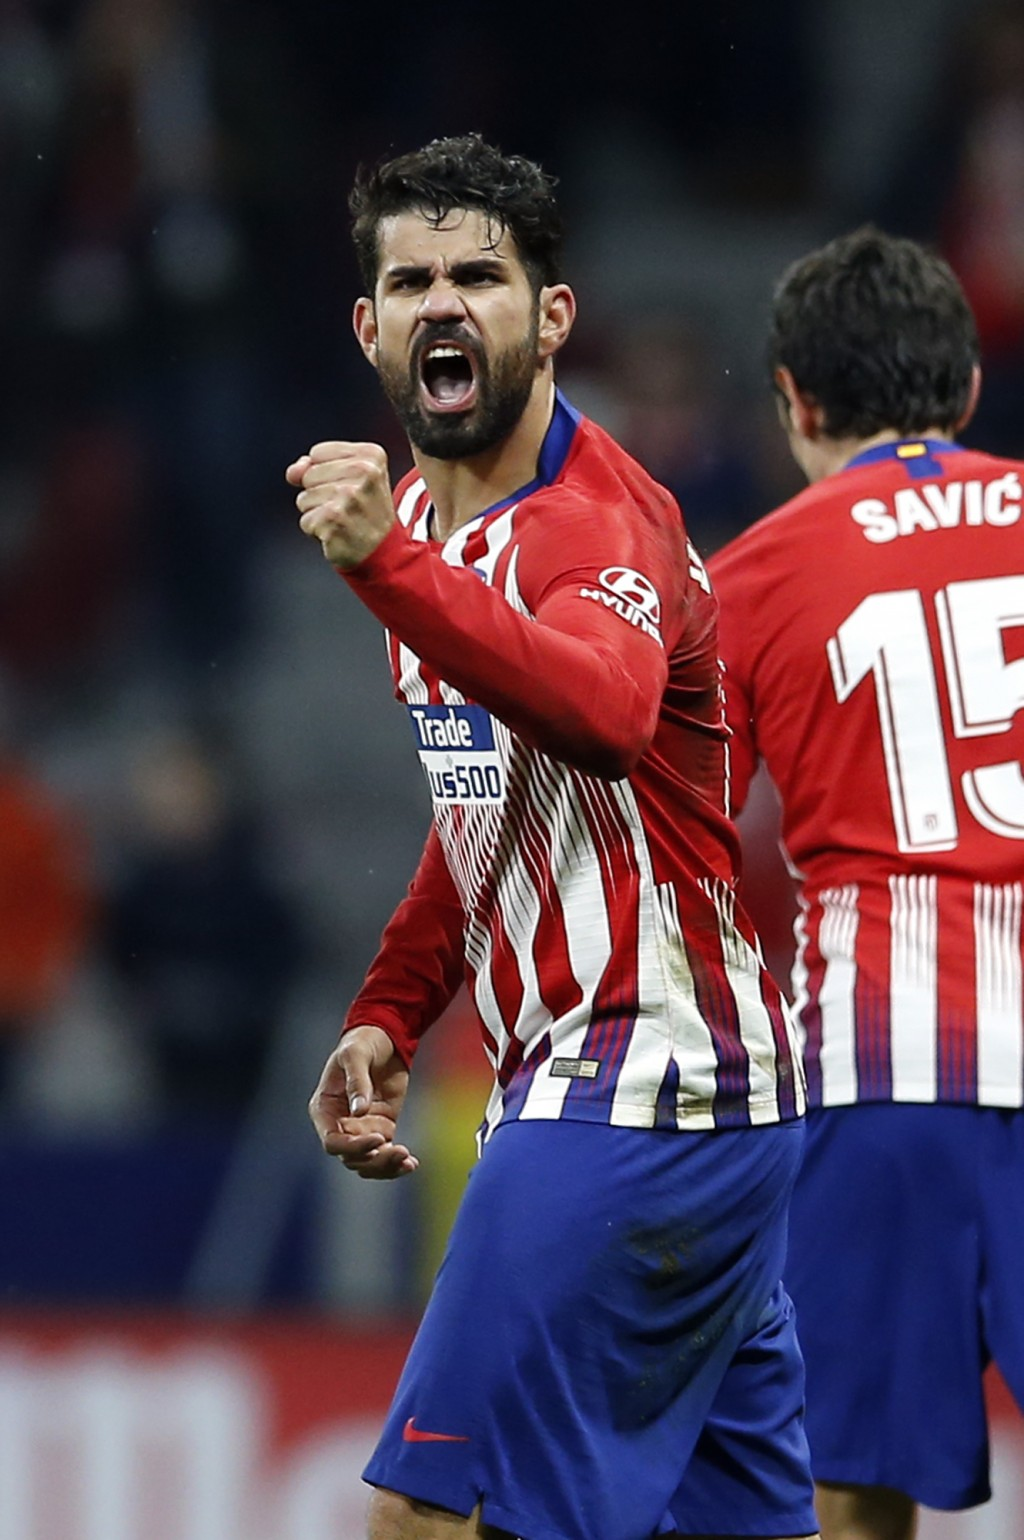 Atletico's Diego Costa celebrates after scoring the opening goal during a Spanish La Liga soccer match between Atletico Madrid and FC Barcelona at the